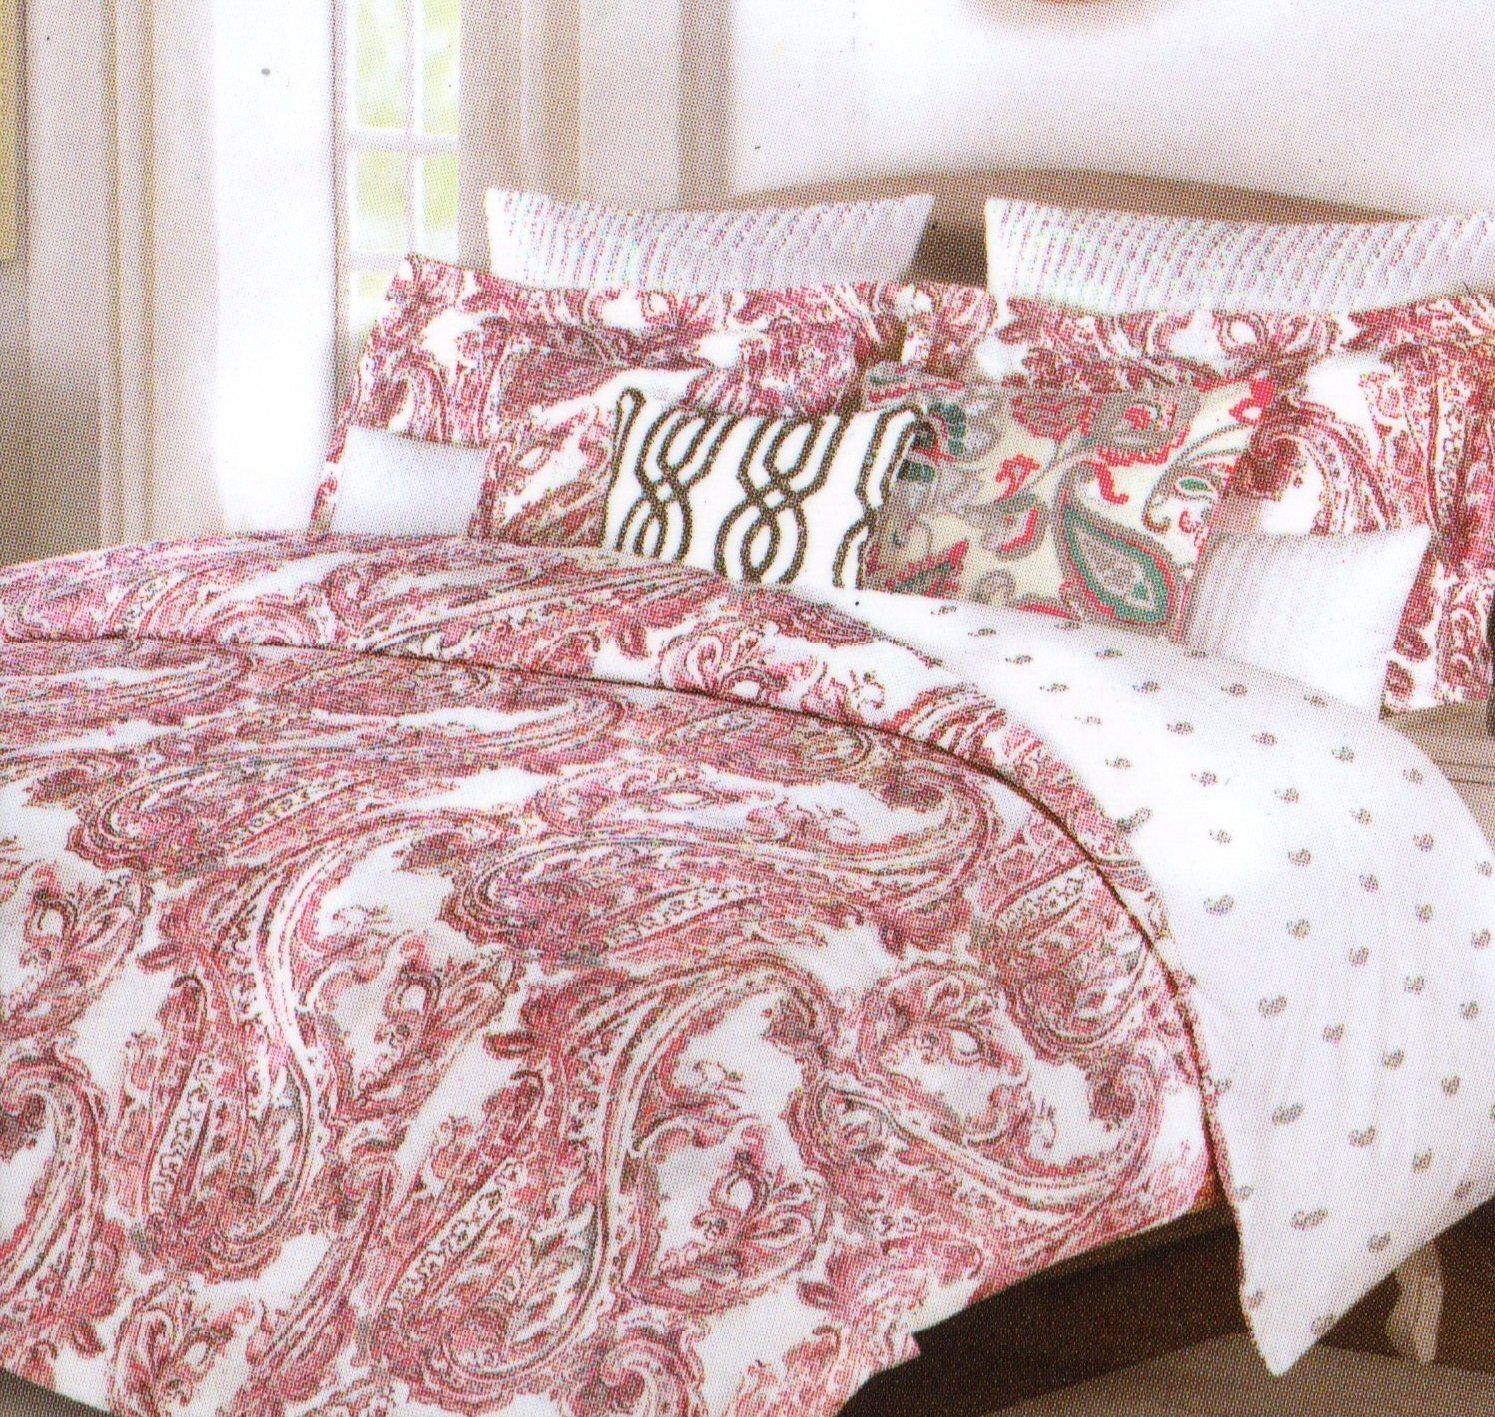 Tahari Home Zanna Paisley Coral Pink Grey Full Queen 3pc Duvet Cover Set Large Scale Floral Paisley Medallion Gray Blush Salmon Pink Sorbet Boteh Style